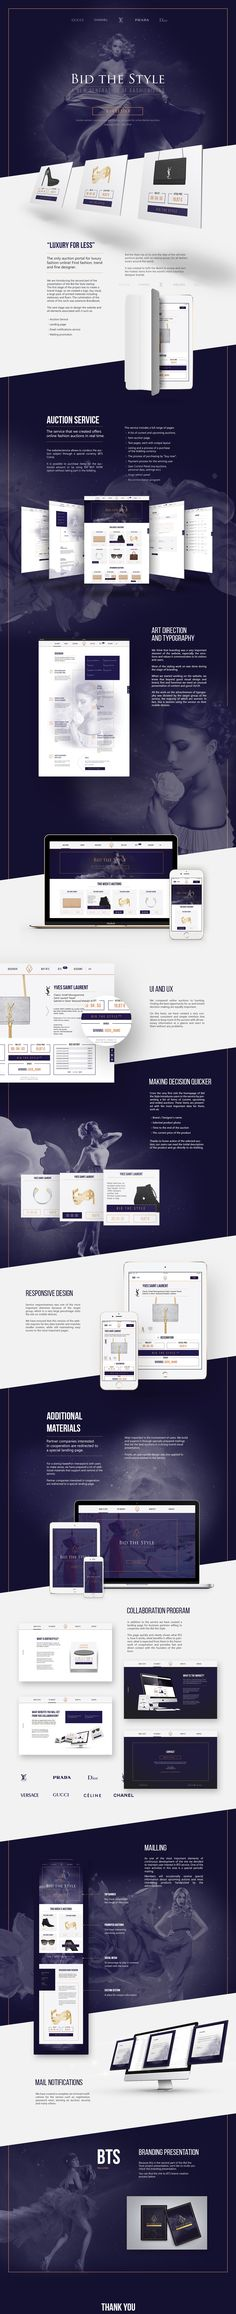 Bid The Style - webdesign on Behance